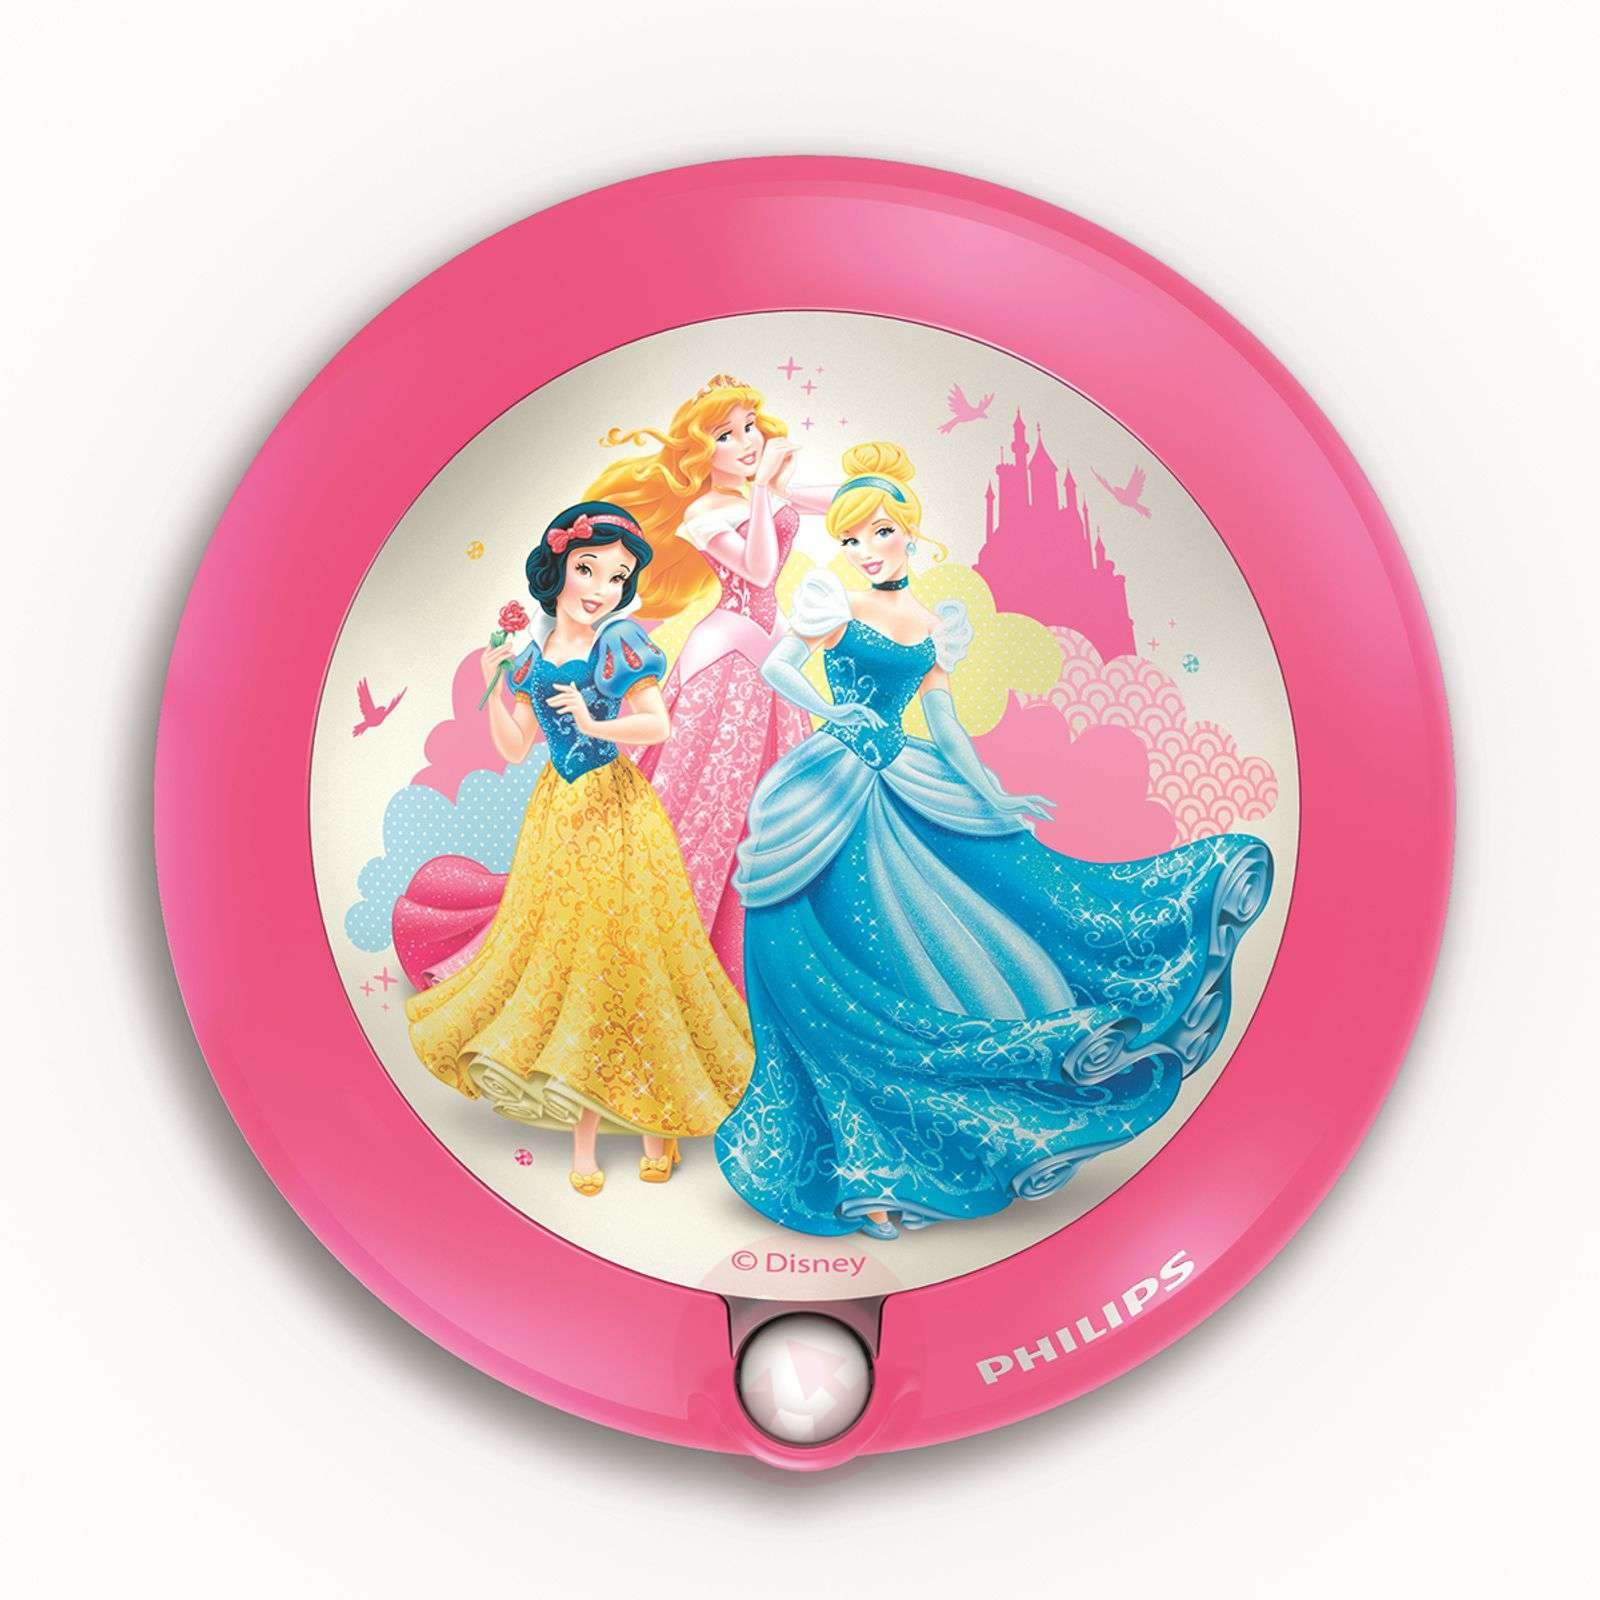 Princess LED Night Light with a Motion Detector-7531541-01